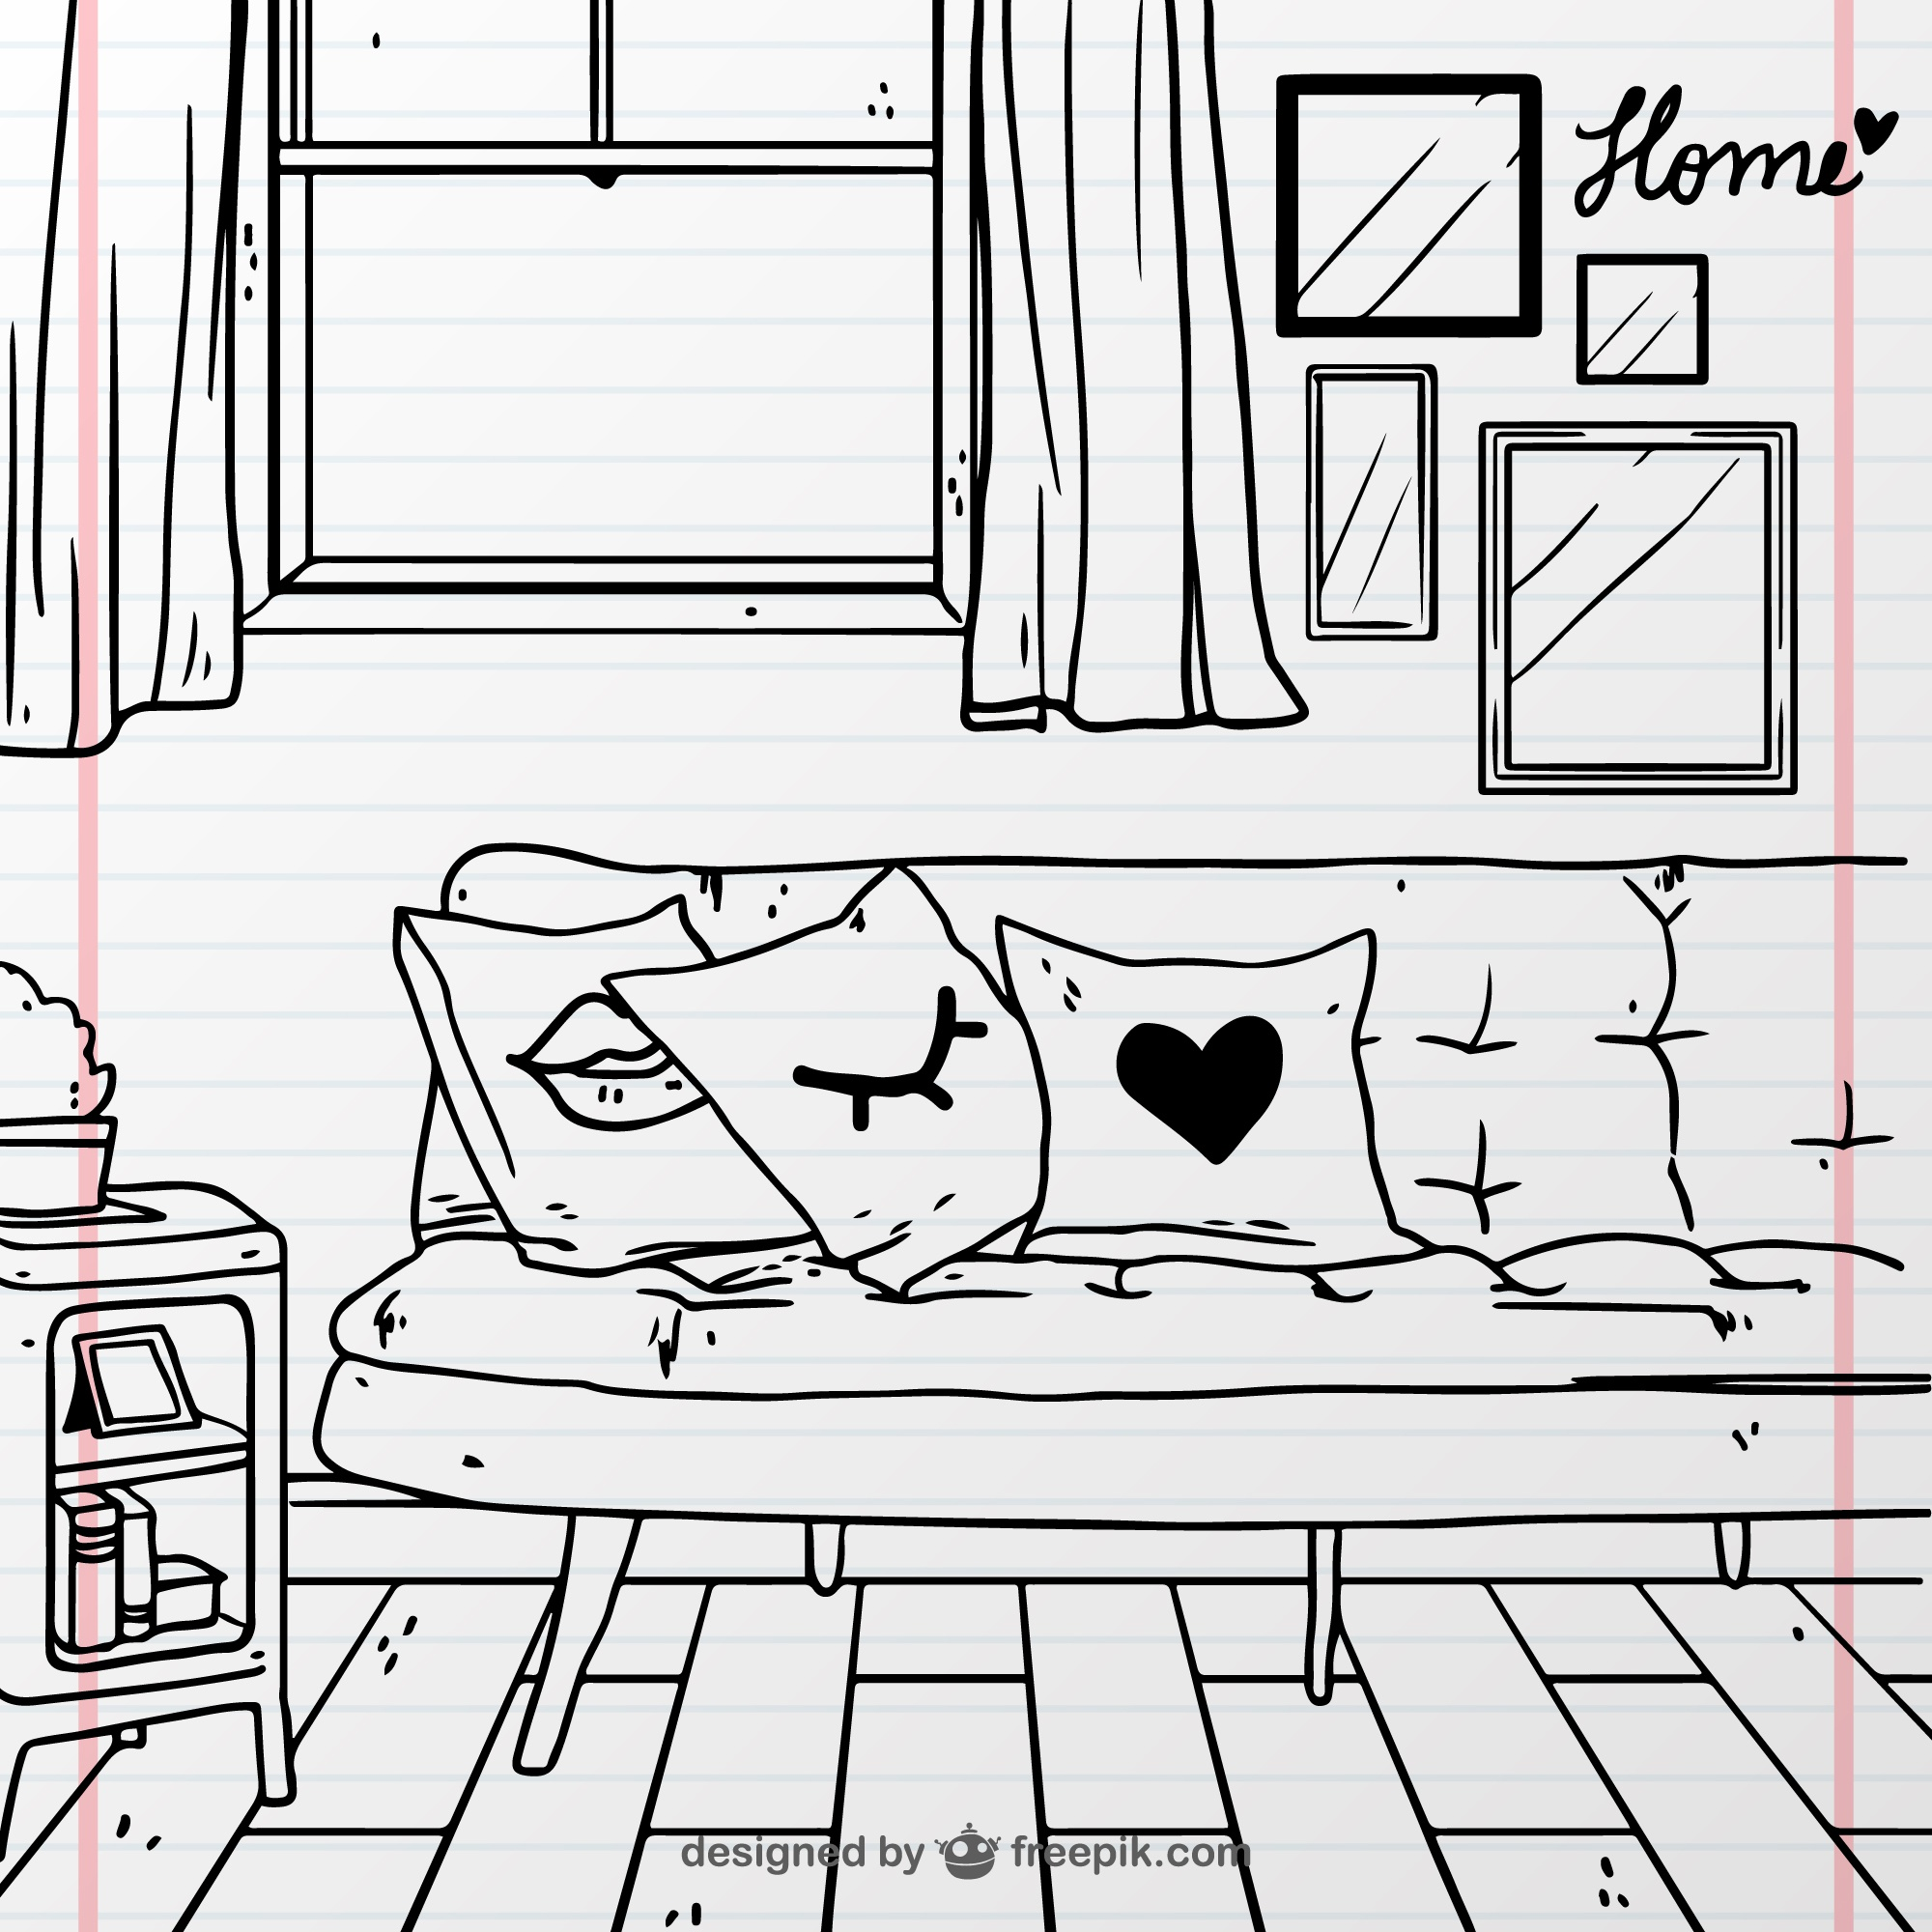 Hand-drawn room with couch and window